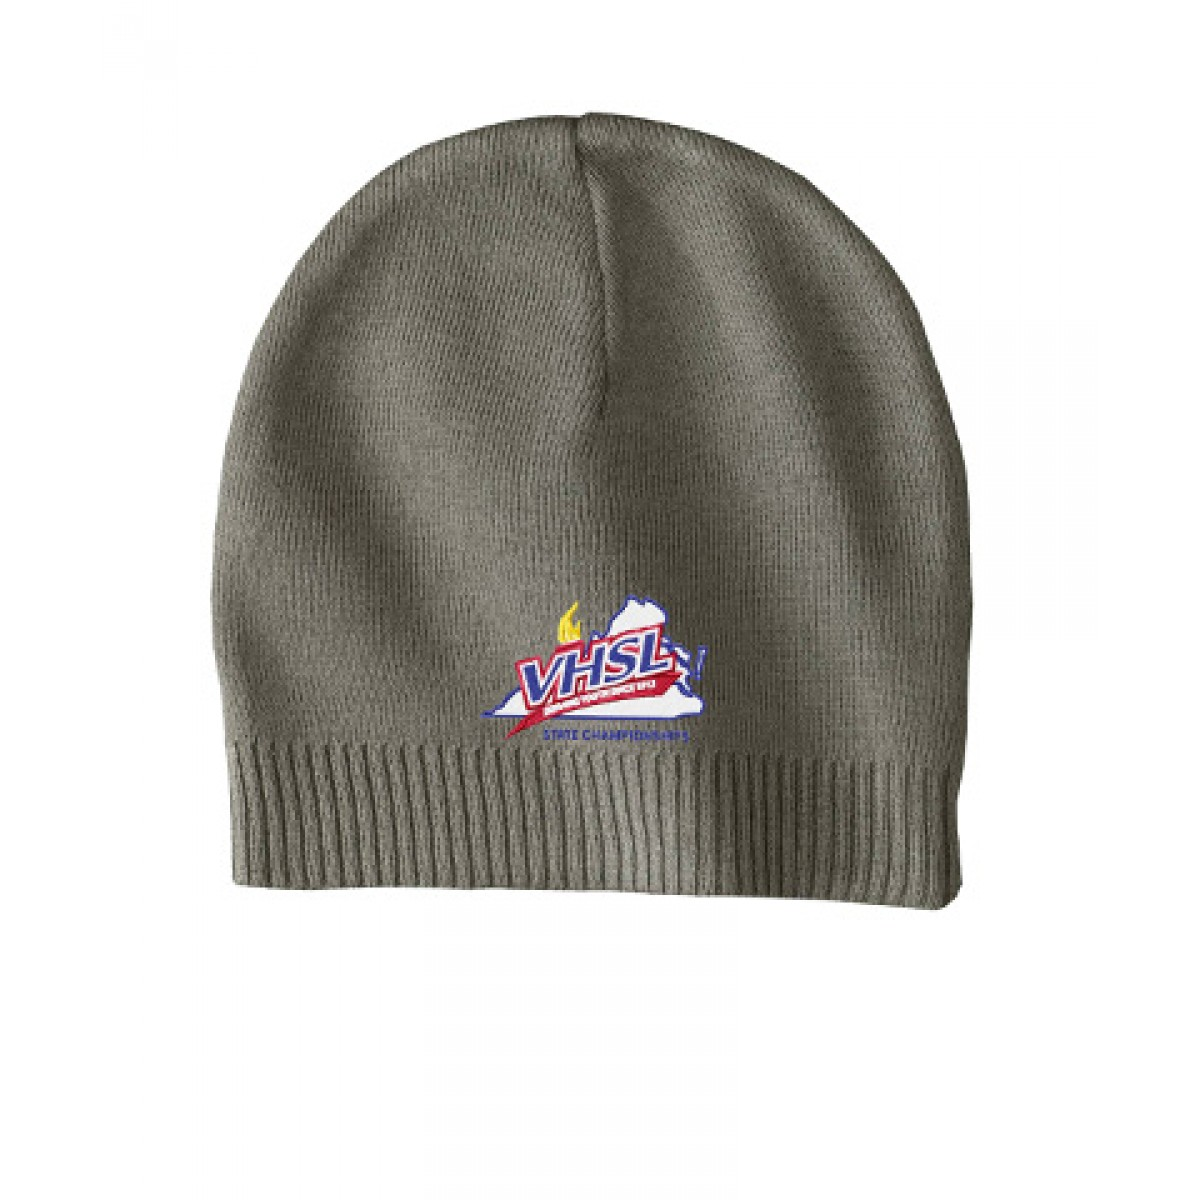 Embroidered 100% Cotton Beanie-Gray/Green-OS